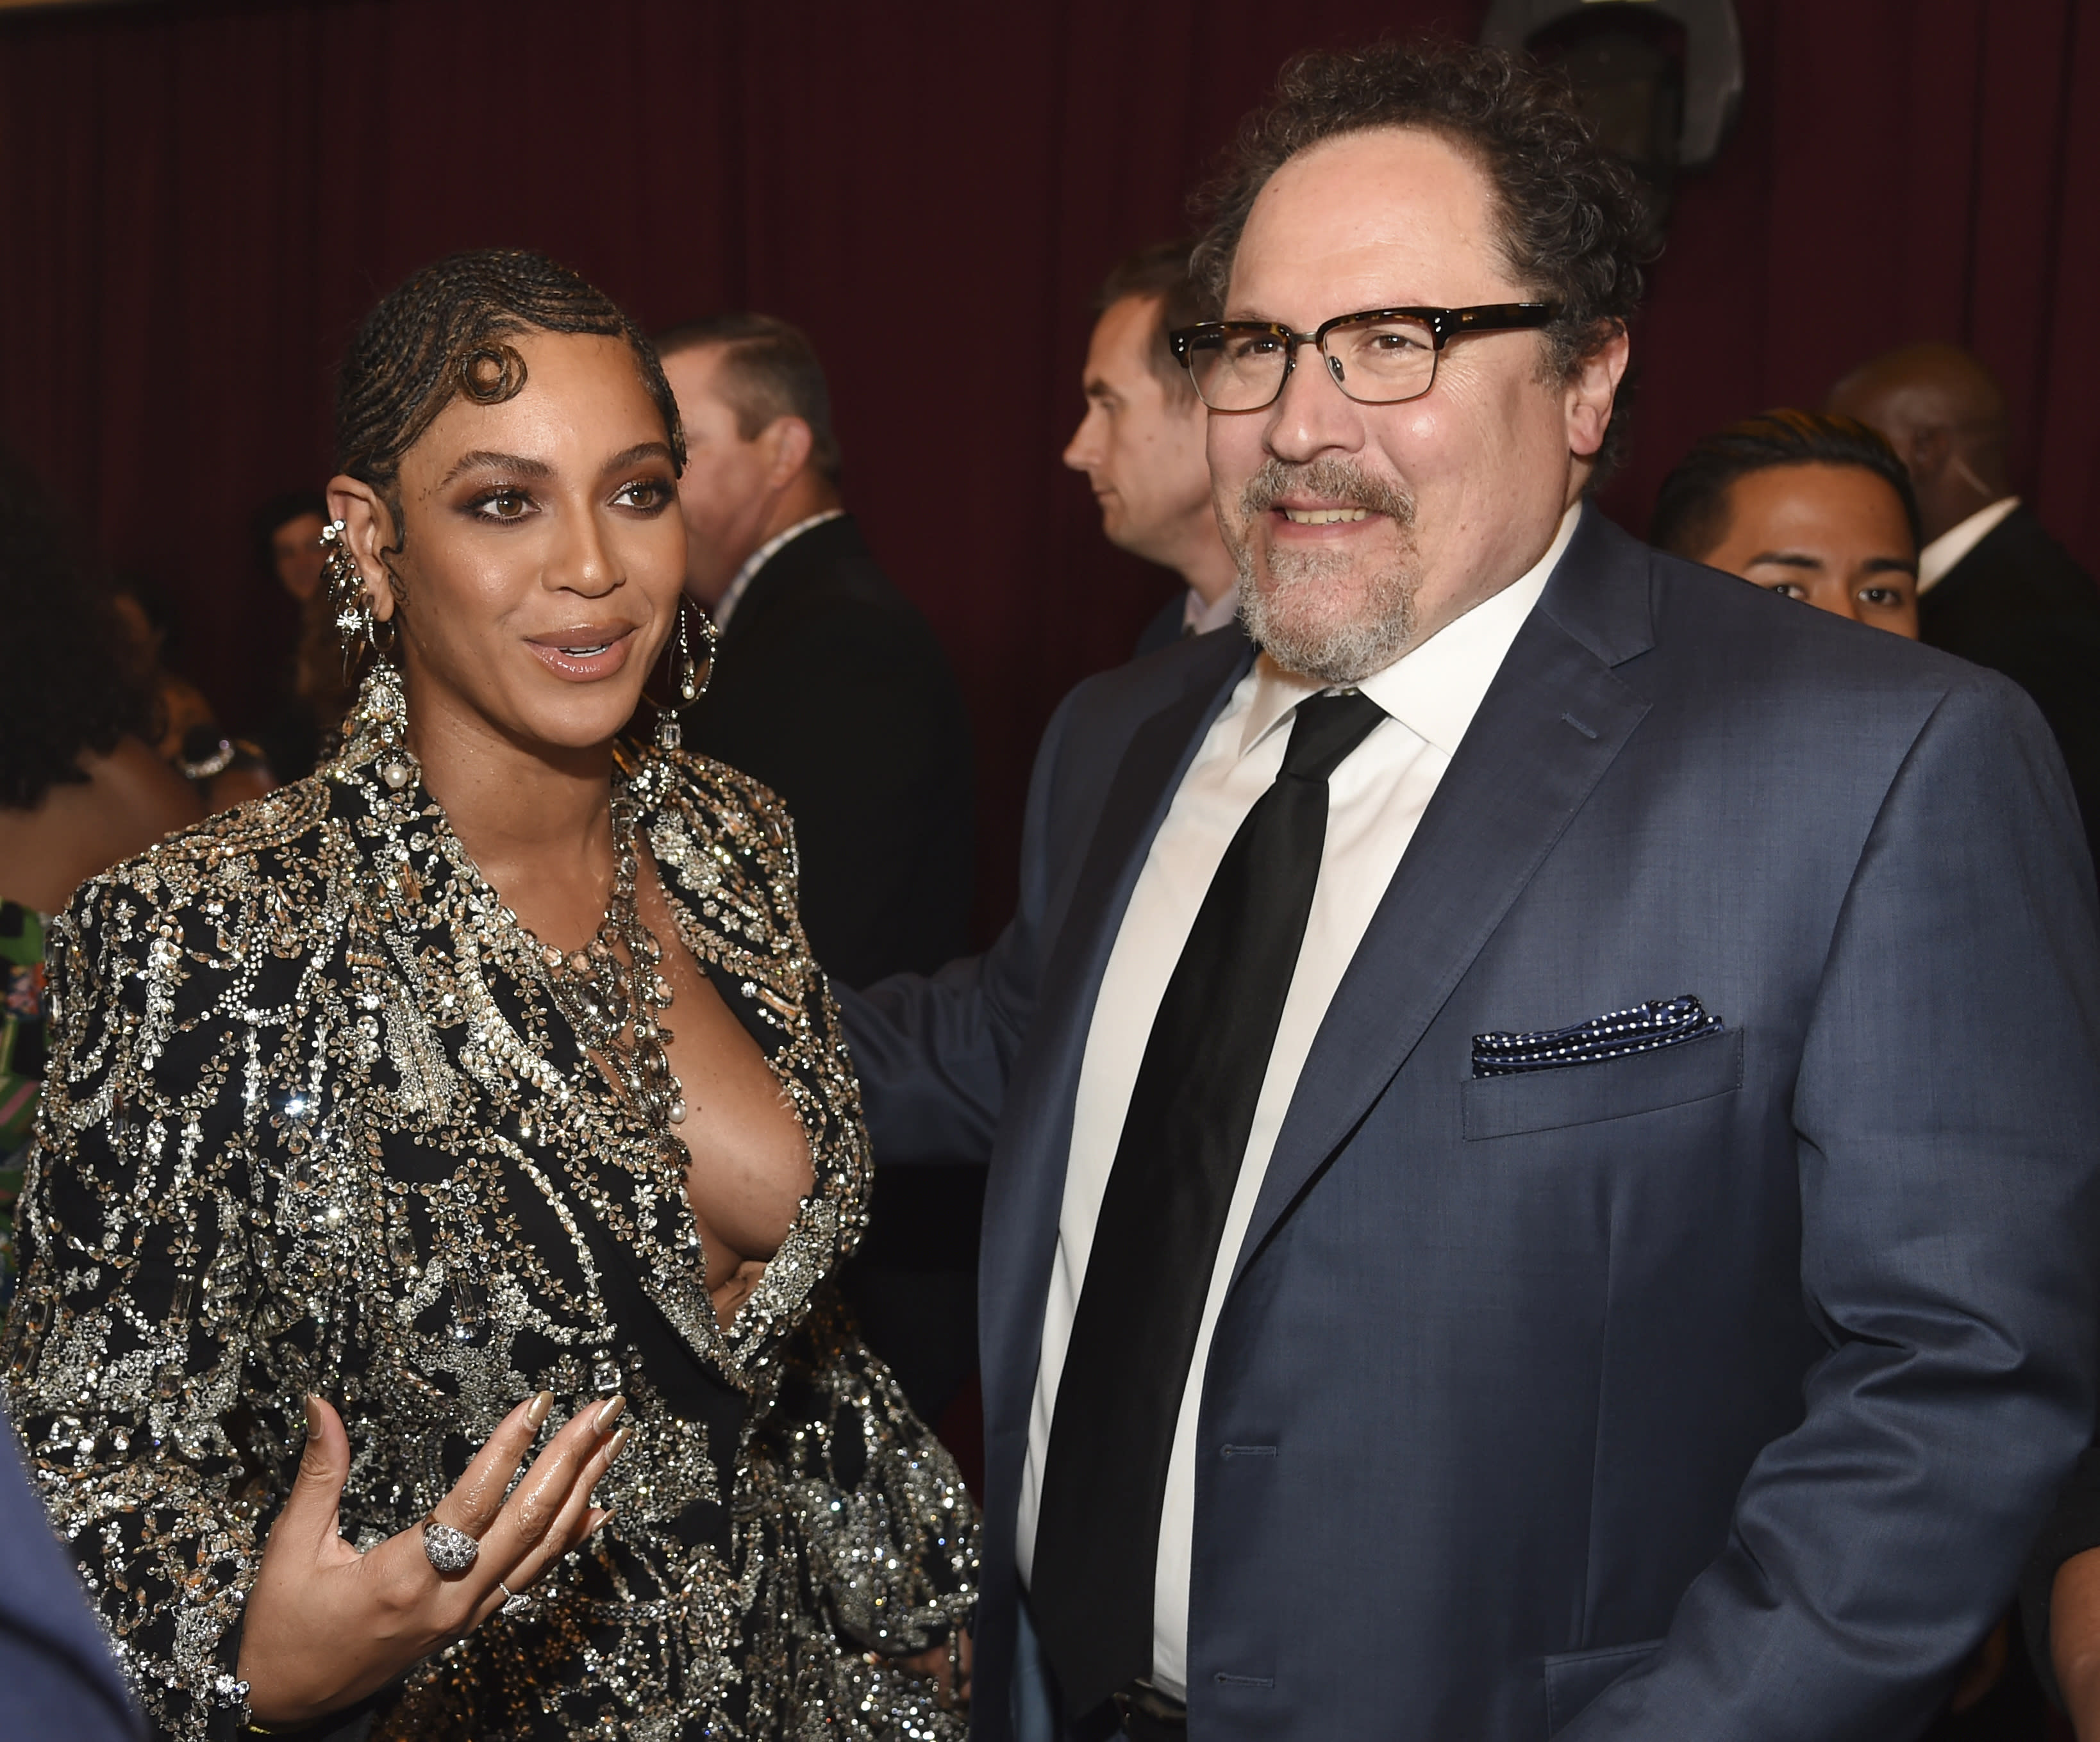 """Beyonce, left, a cast member in """"The Lion King,"""" and the film's director Jon Favreau pose together at the premiere of the film, Tuesday, July 9, 2019, in Los Angeles. (Photo by Chris Pizzello/Invision/AP)"""